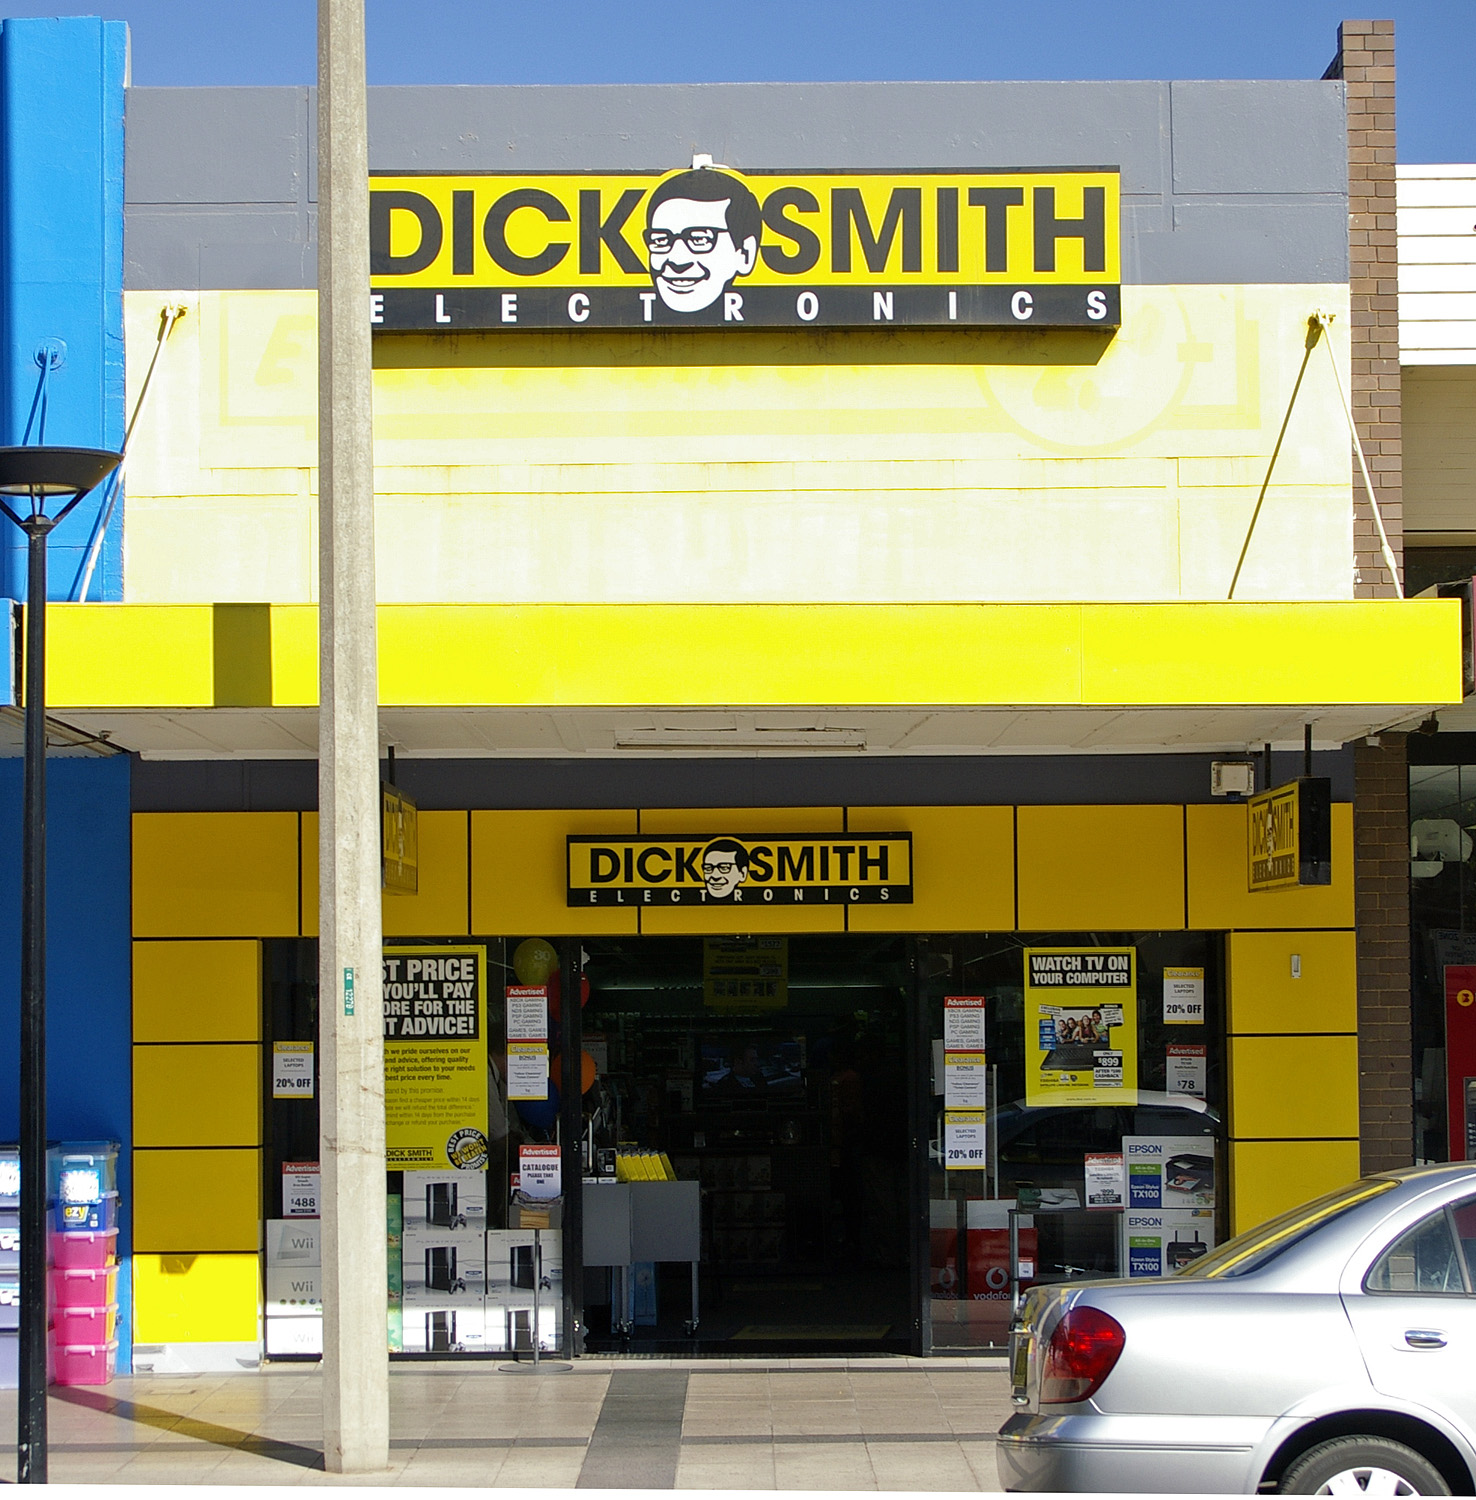 Dick smith electronics eee